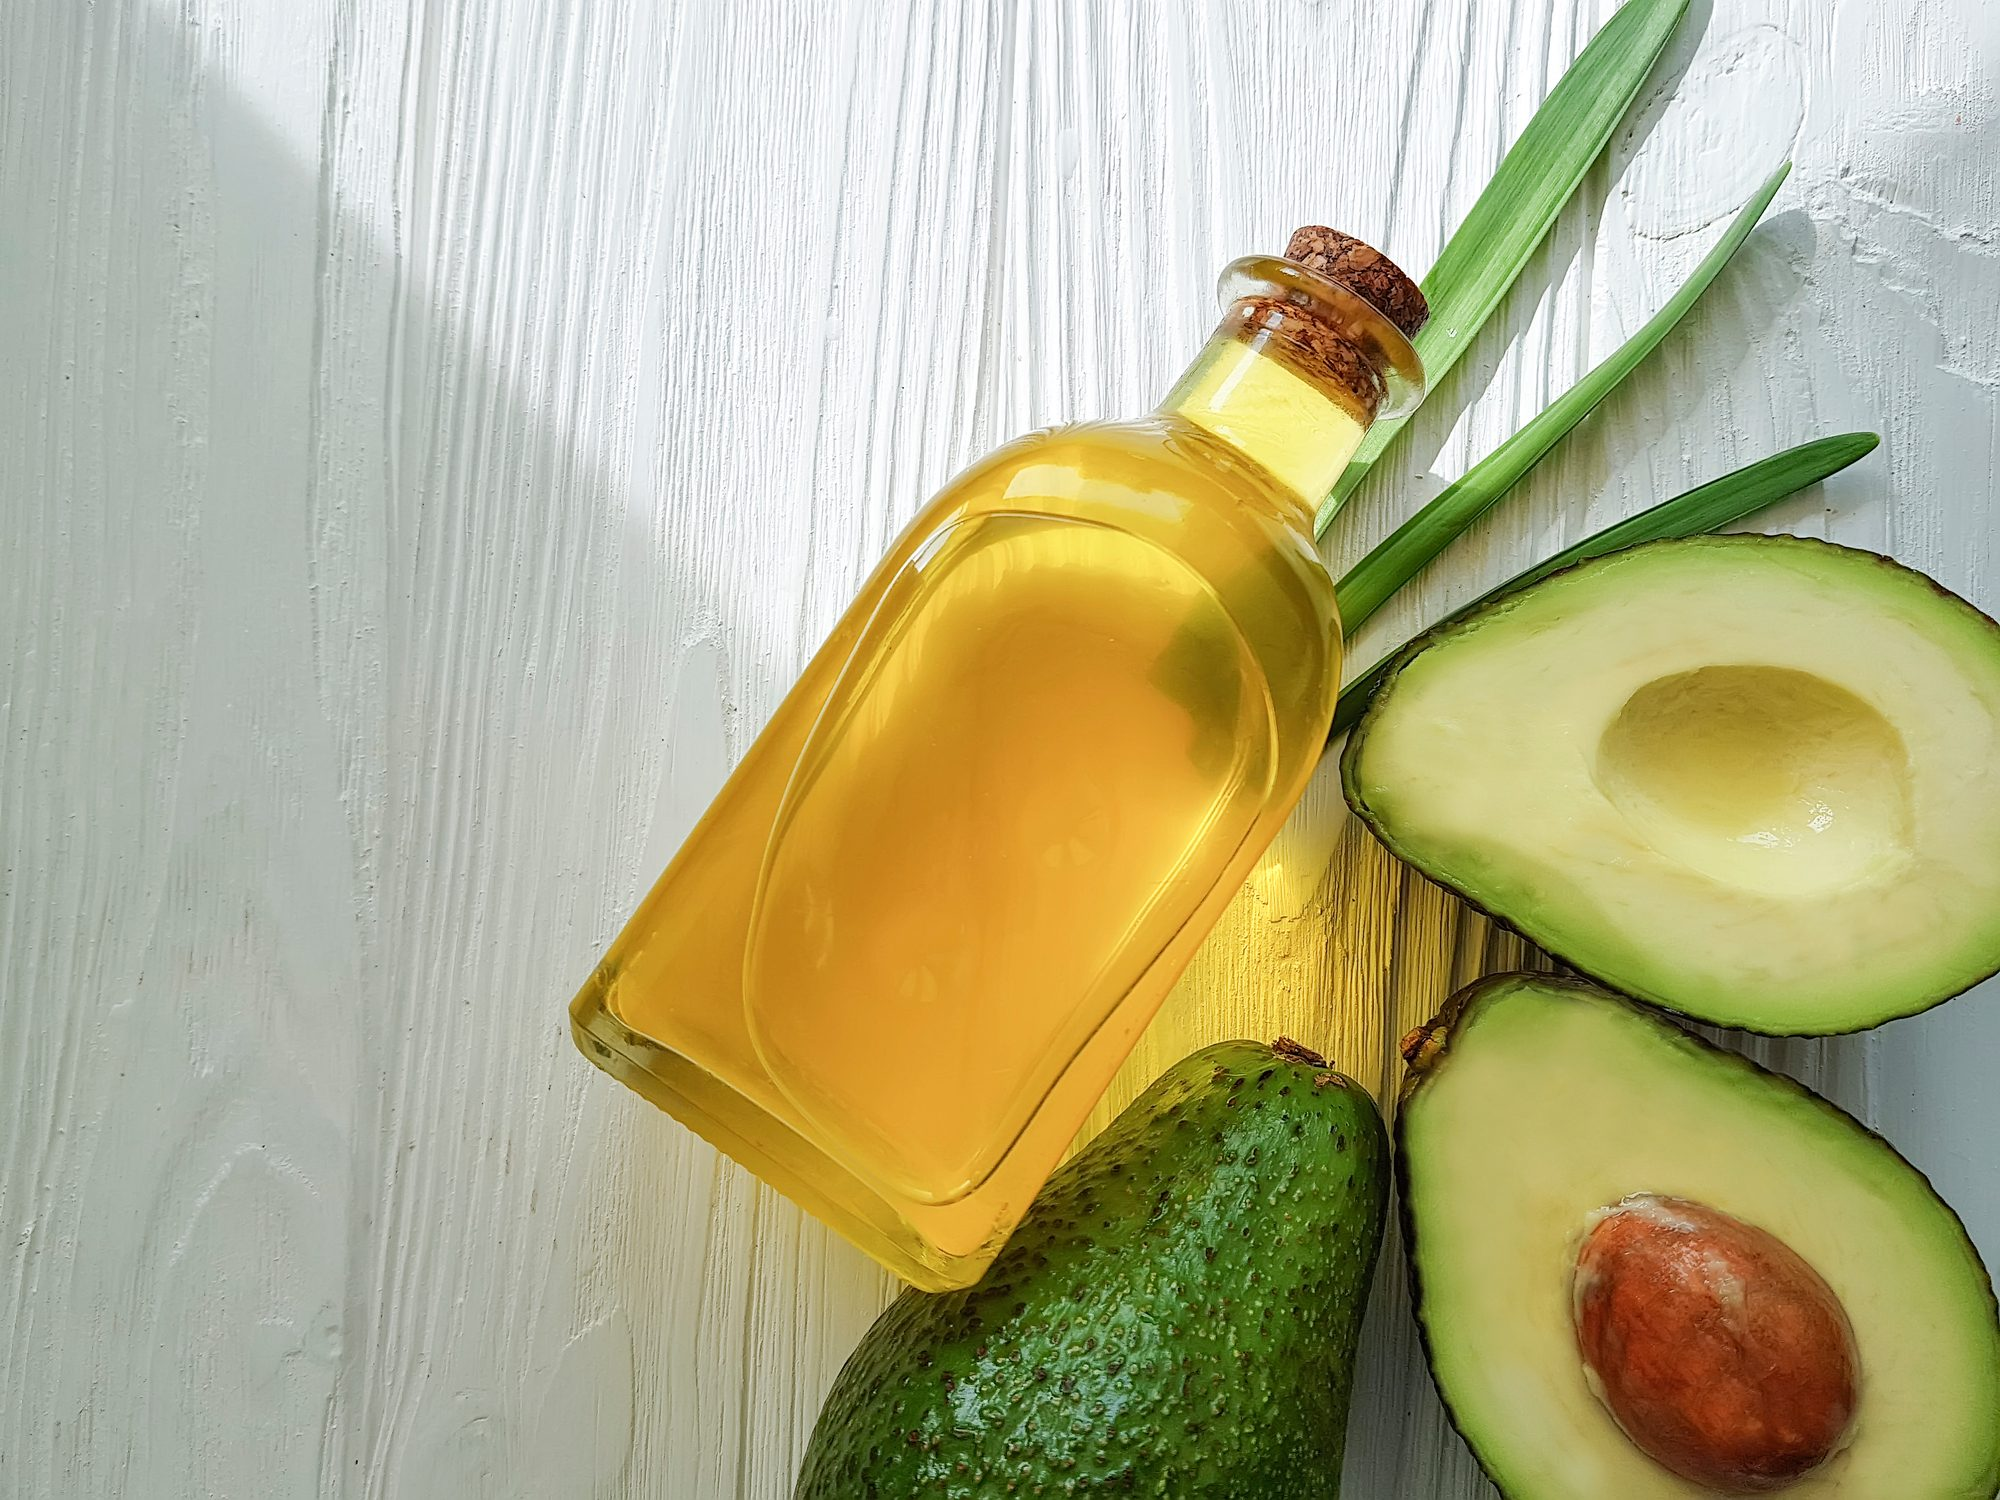 healthiest cooking oils | avocado oil and avocadoes